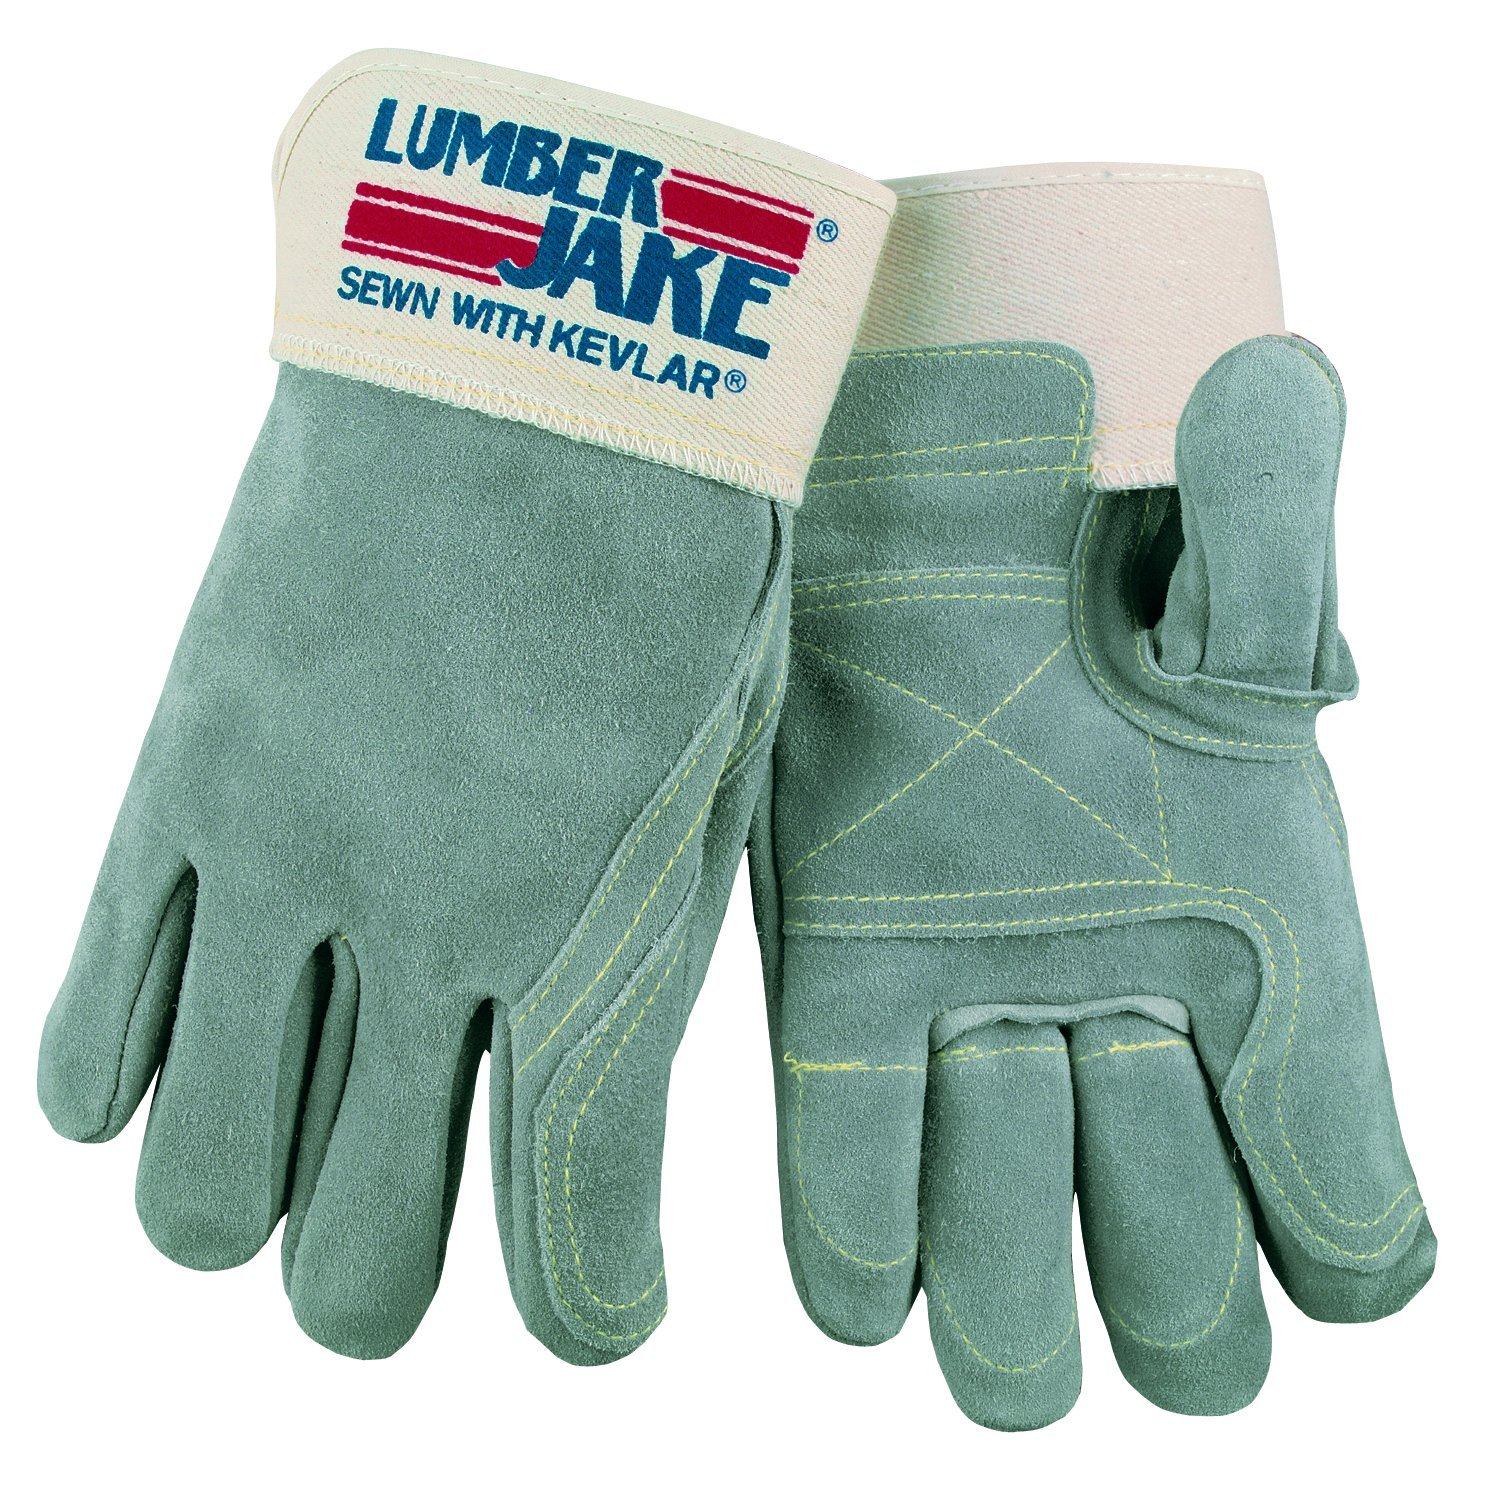 Finger and Thumb Full Leather Back Glove Medium MCR Safety 1735M Lumber Jake Double Leather Palm 1-Pair